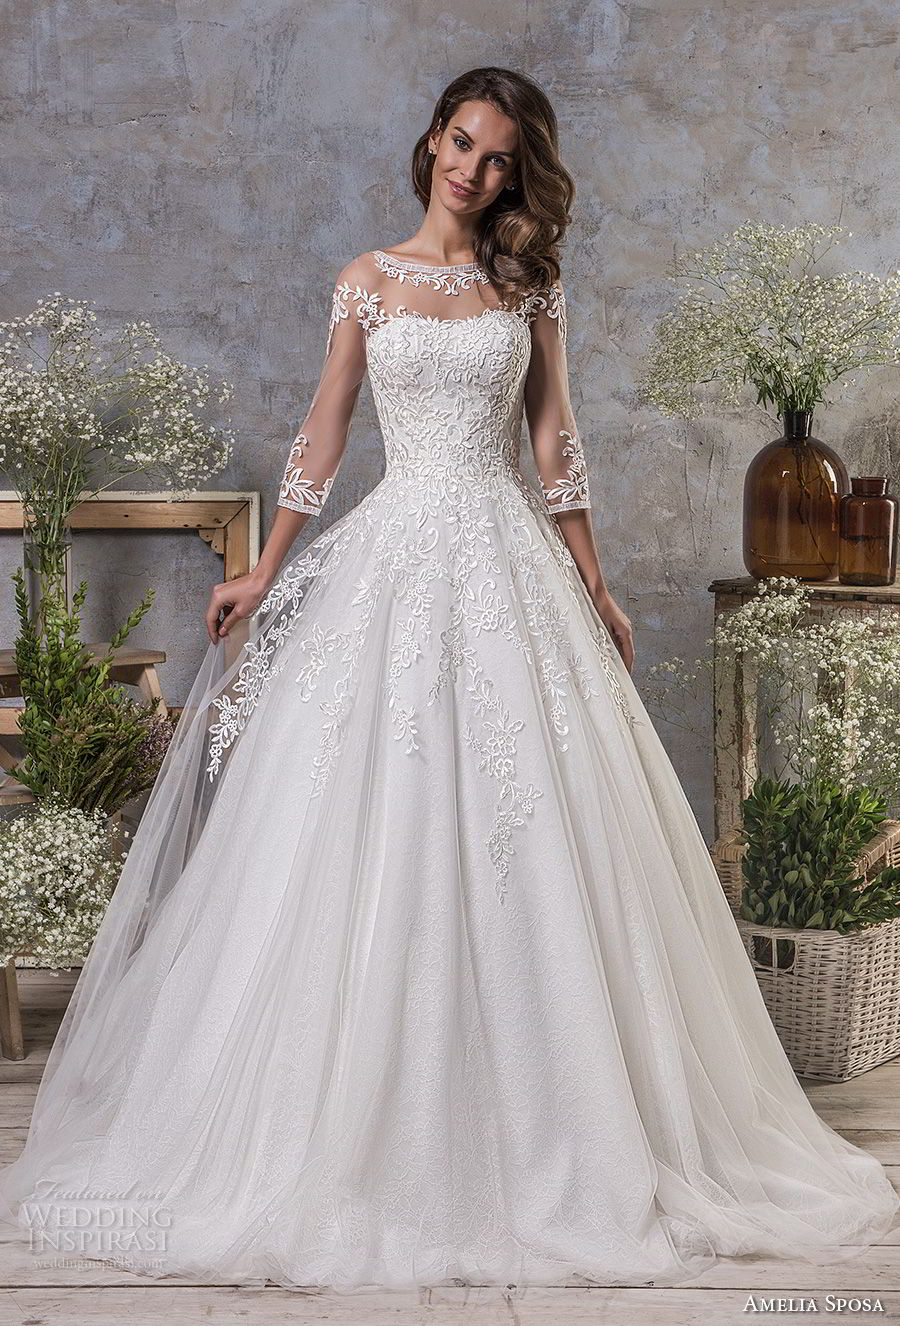 amelia sposa fall 2018 bridal three quarter sleeves illusion bateau semi sweetheart neckline heavily embellished bodice romantic a line wedding dress keyhole back chapel train (11) mv